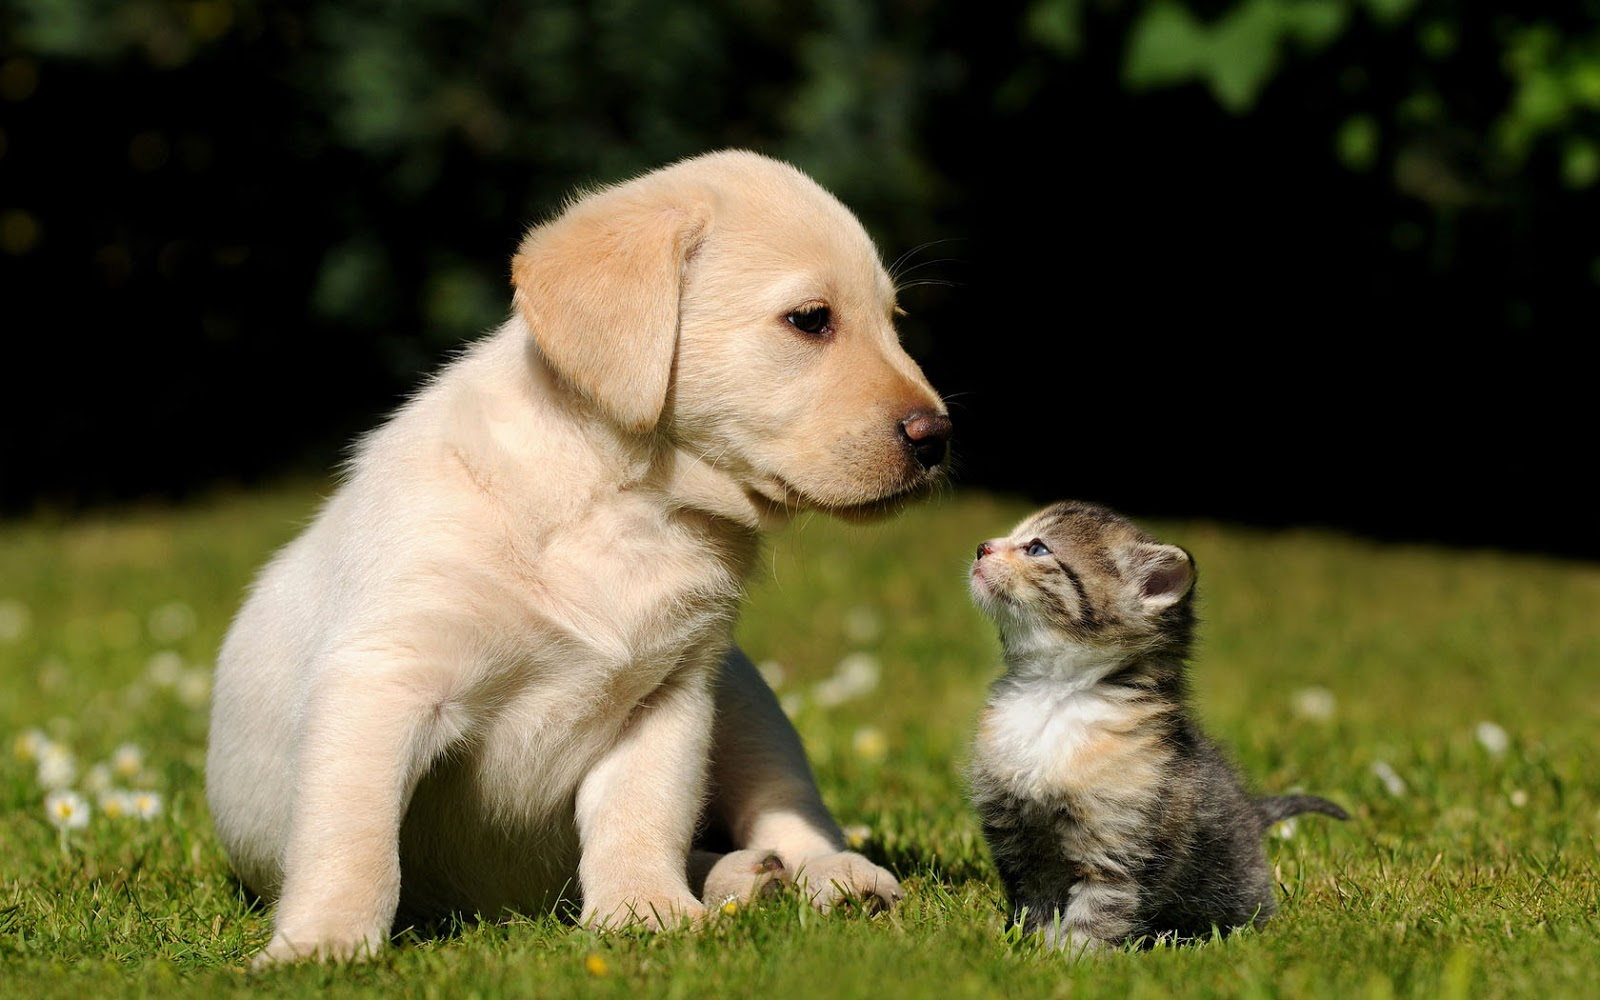 Of Dogs And Cats Hd Romantic Cat And Dog Wallpaper Hd Dogs And Cats 1600x1000